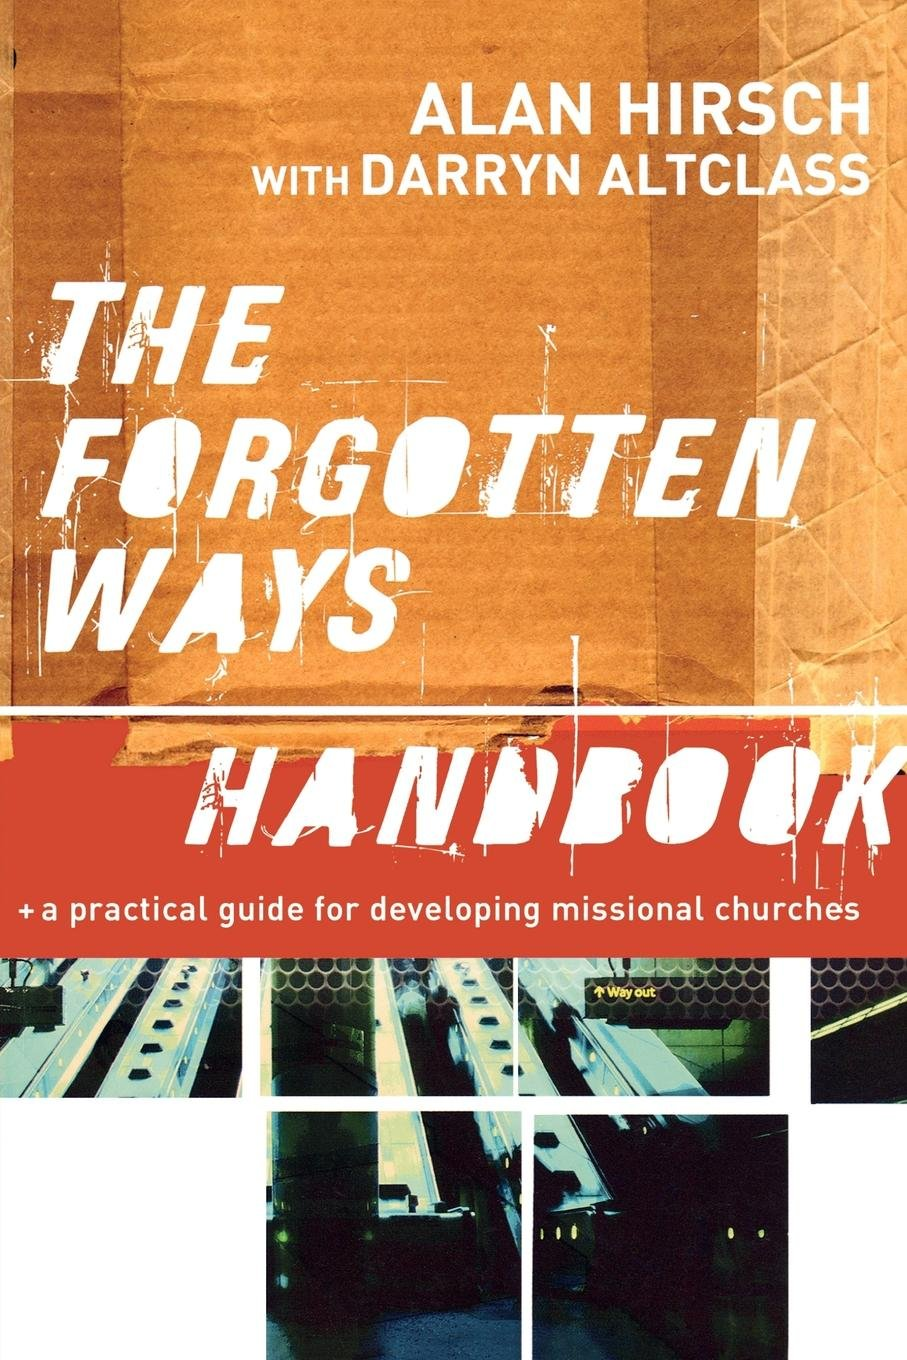 Read Online The Forgotten Ways Handbook: A Practical Guide for Developing Missional Churches pdf epub